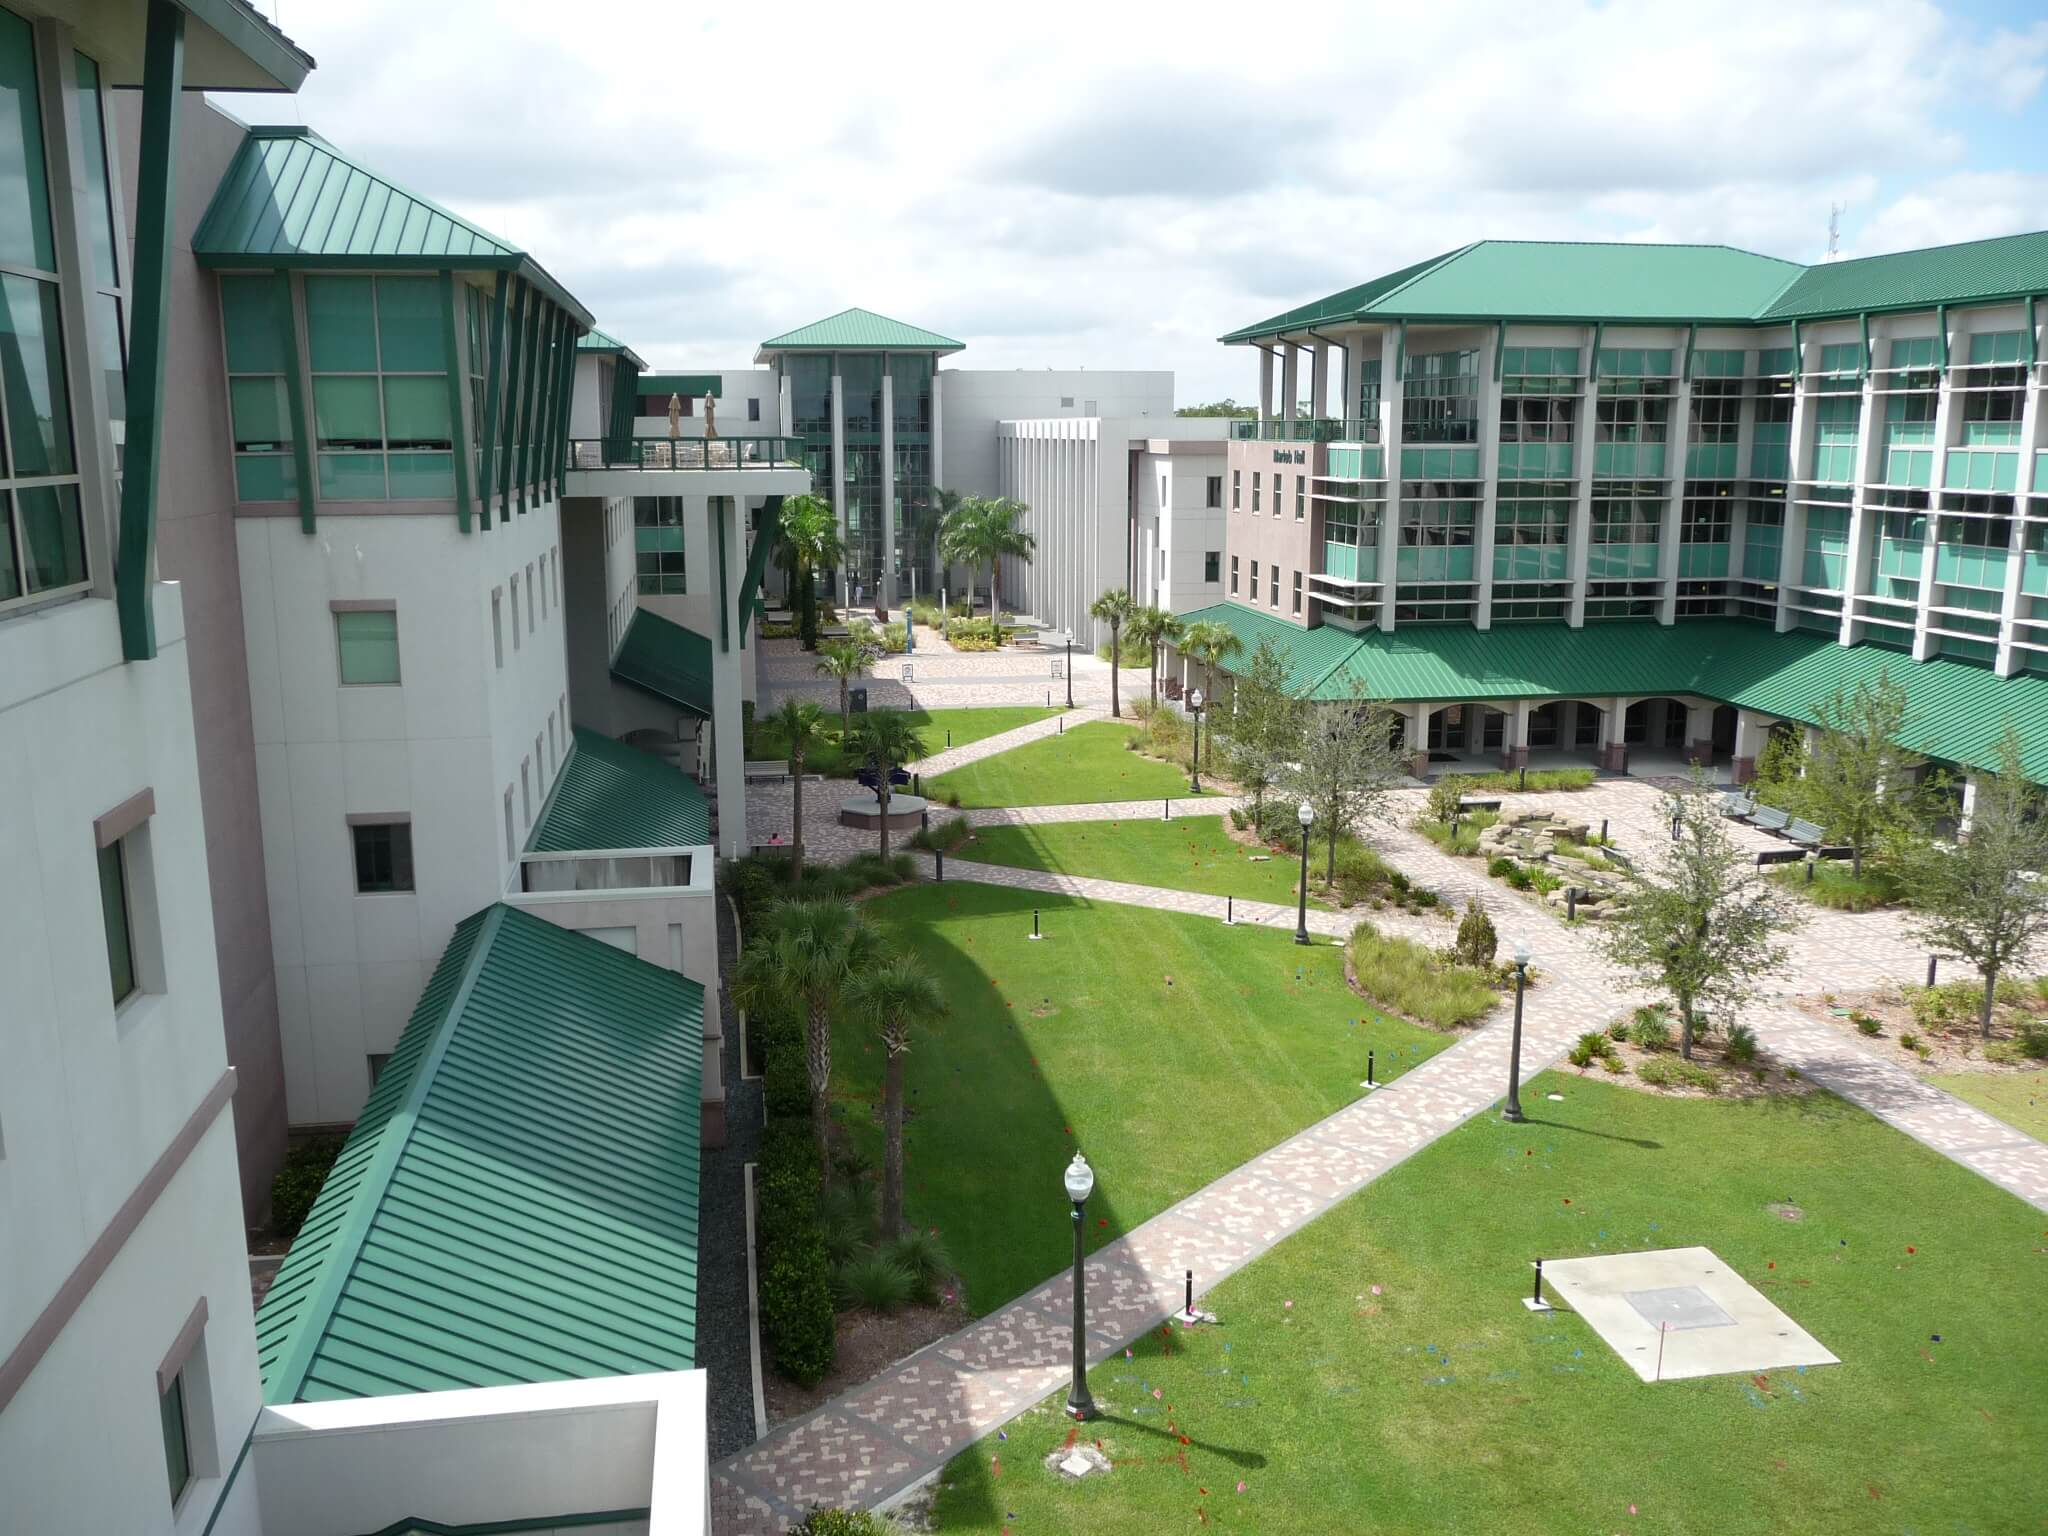 FGCU hopes to add three degree programs by 2017